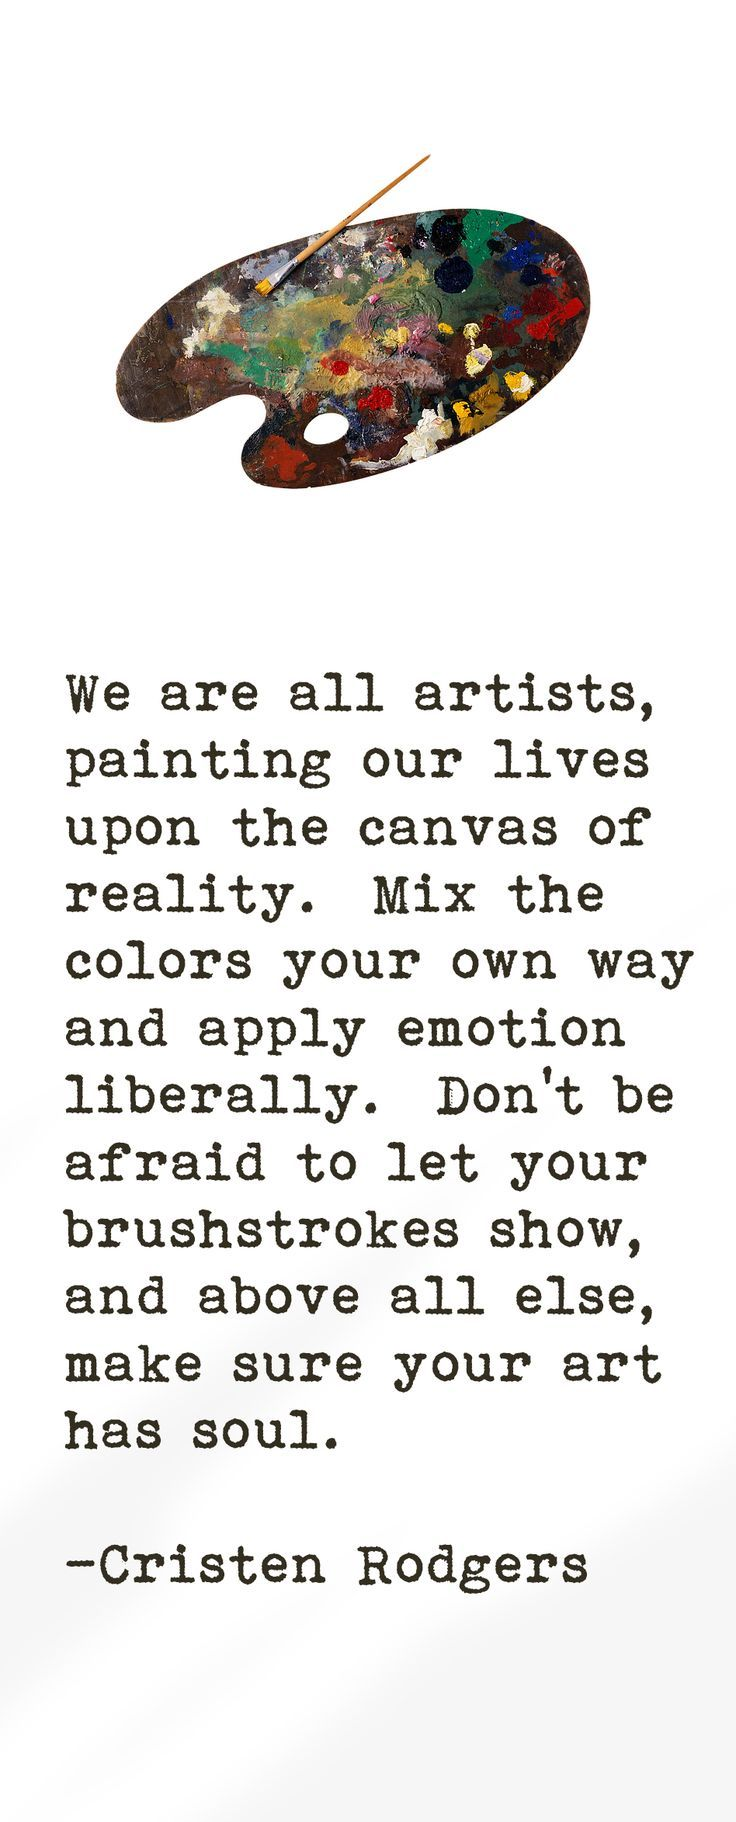 We are all artists, painting our lives upon the canvas of